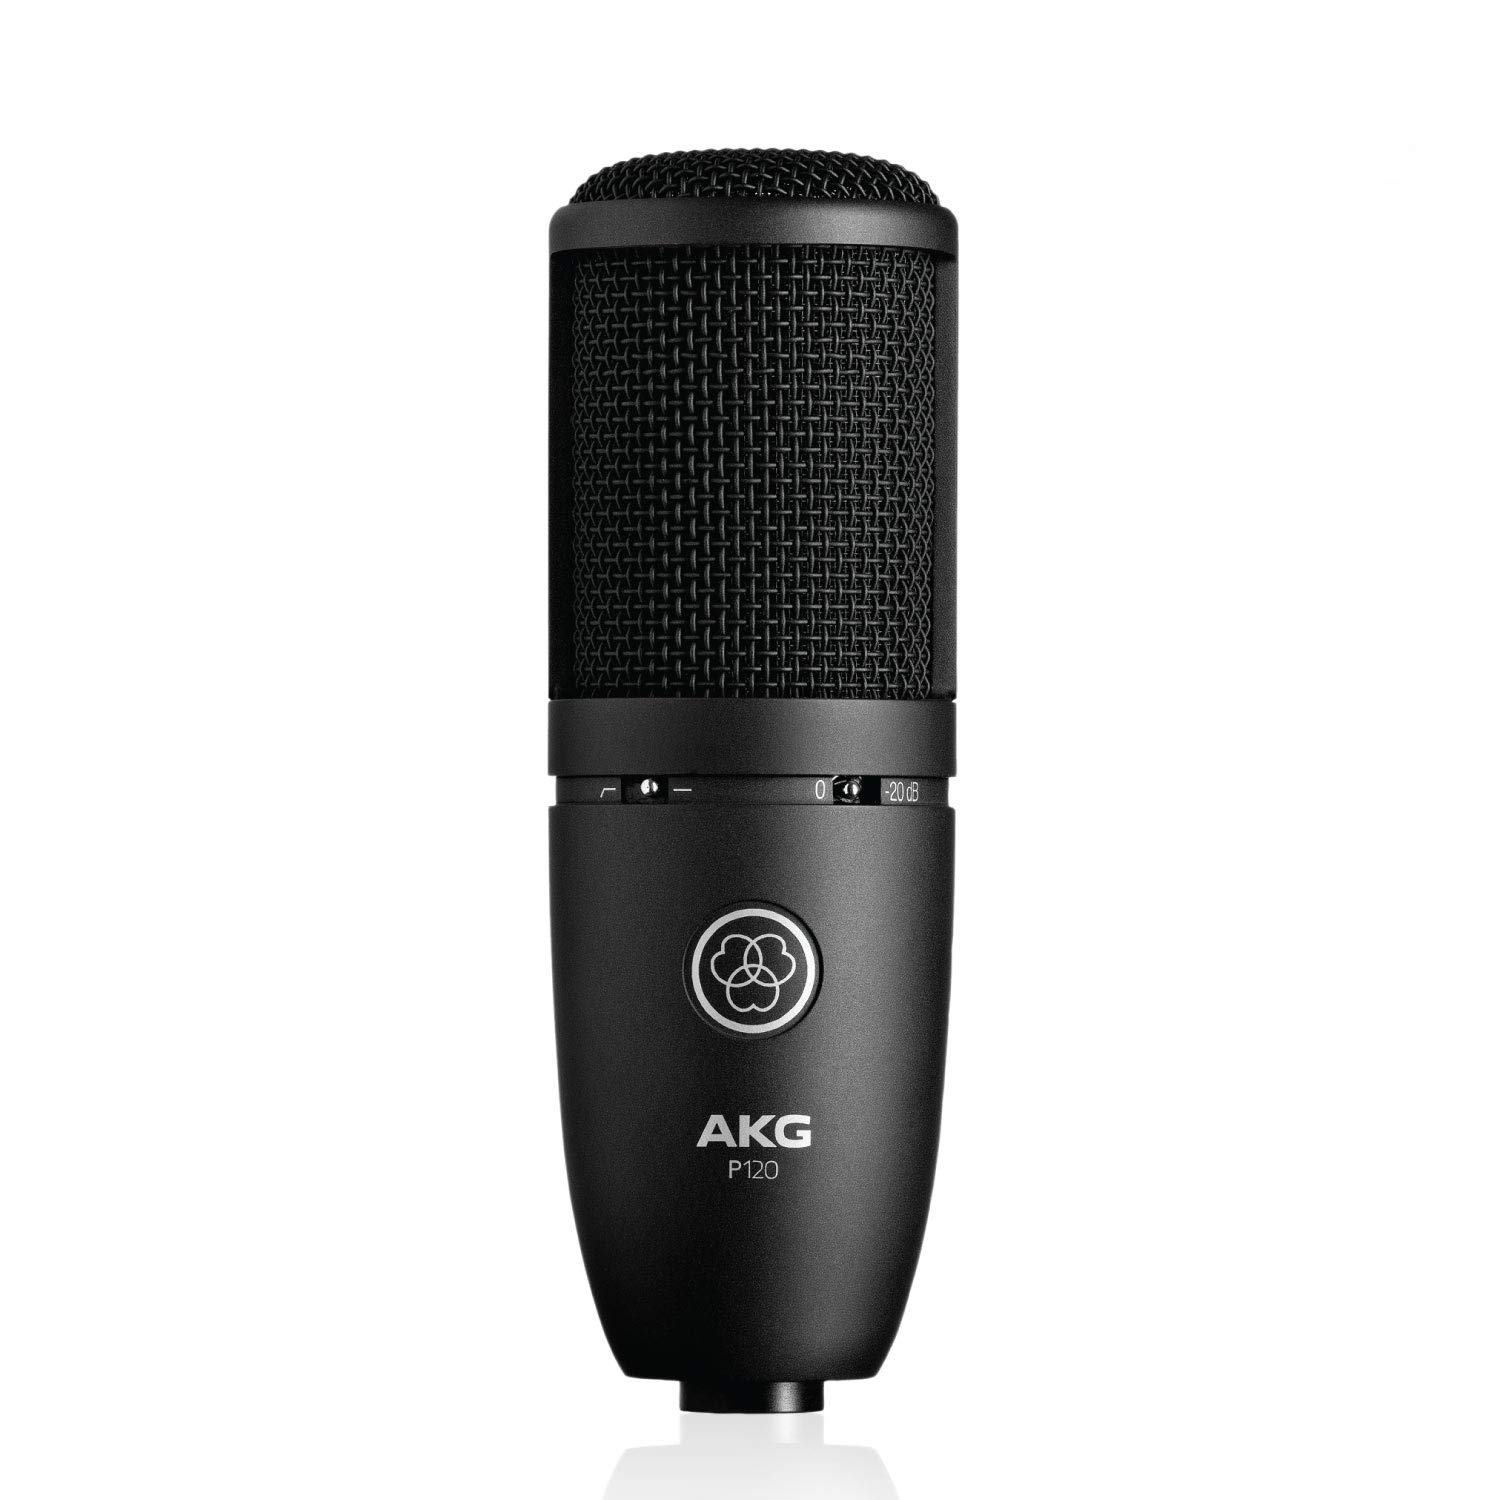 AKG P120 High-Performance General Purpose Recording Microphone